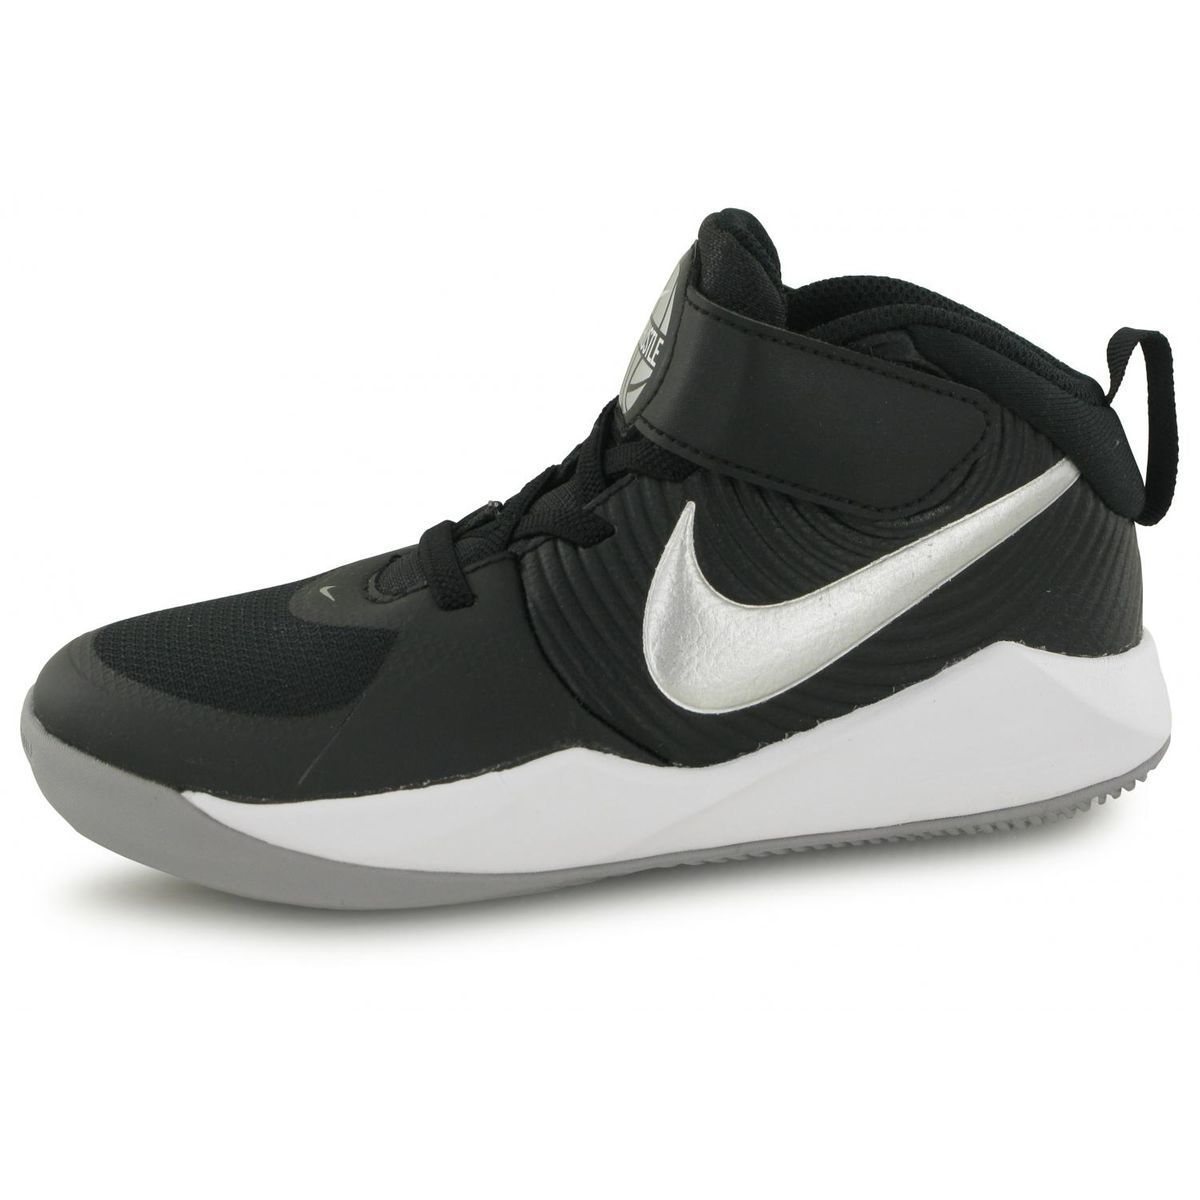 chaussure fille taille 33 nike